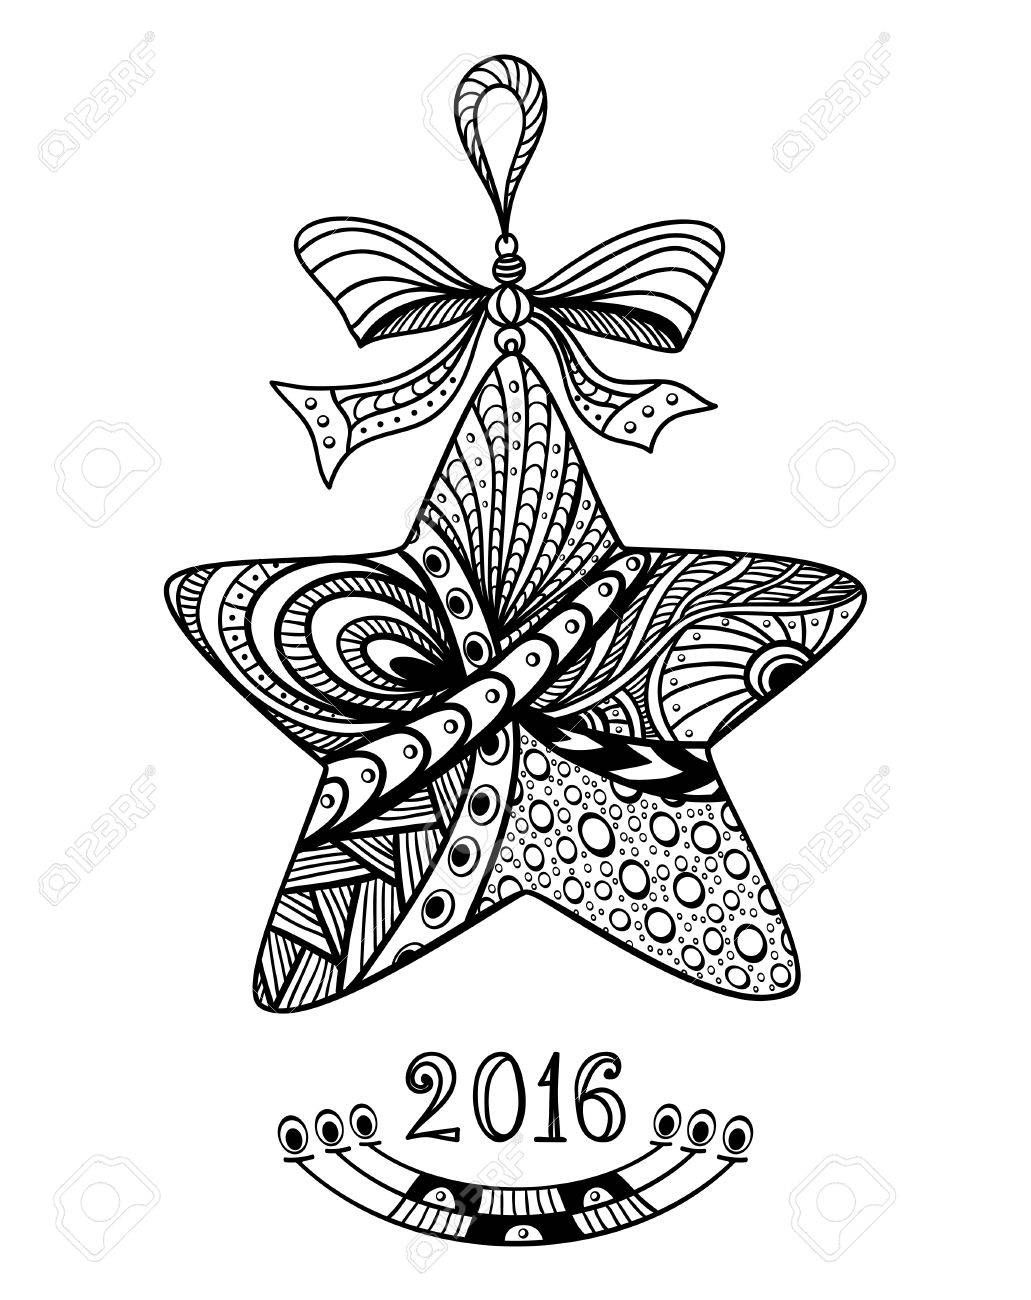 Christmas Star In Zen Doodle Style Black On White Coloring Page For Book Or